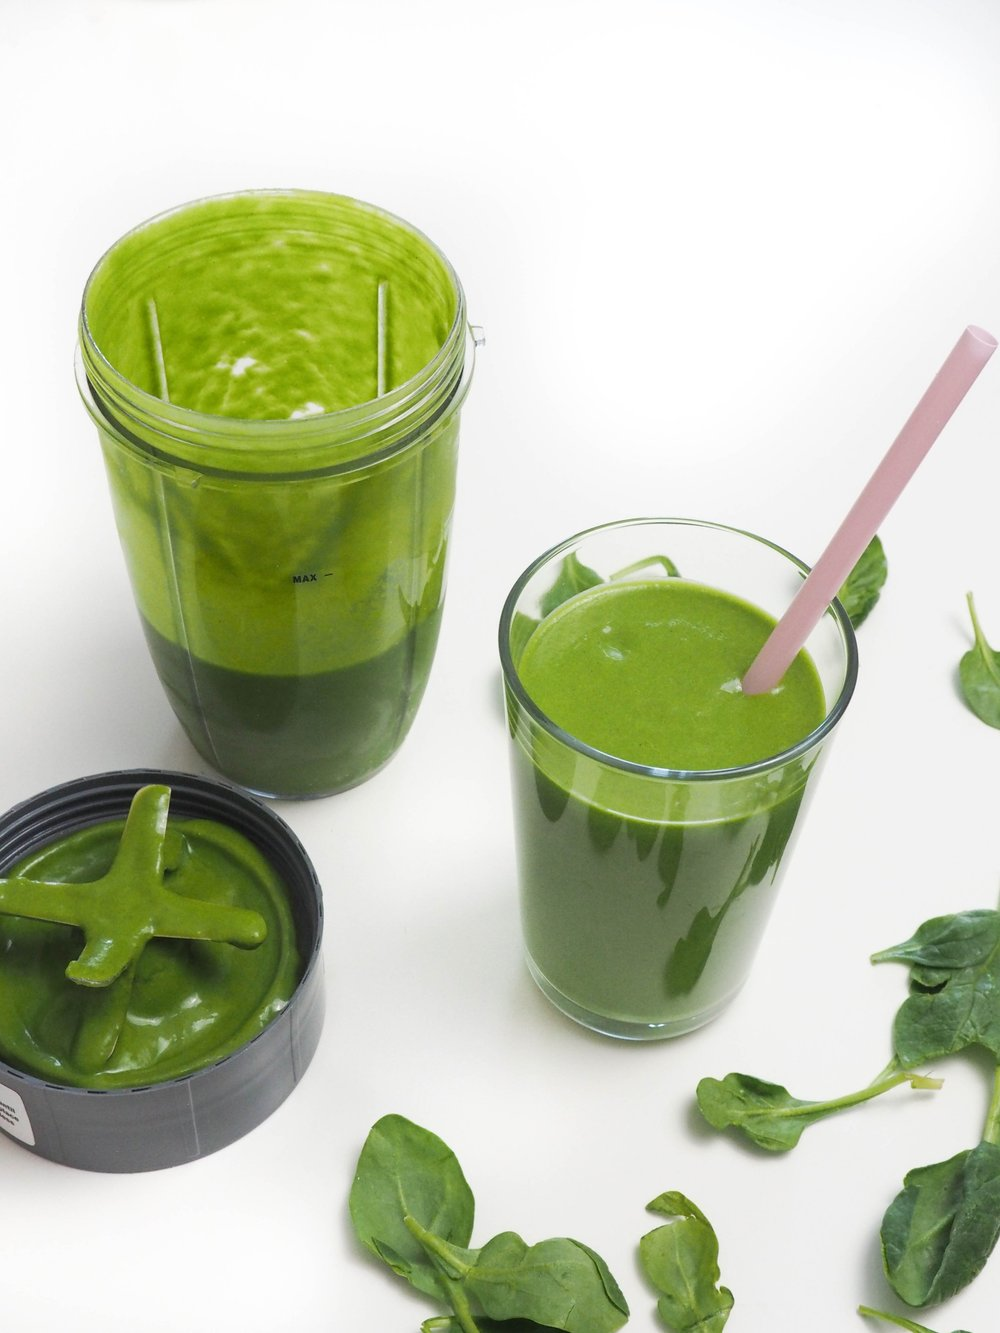 Green Lean Power Smoothie letsregale.com0